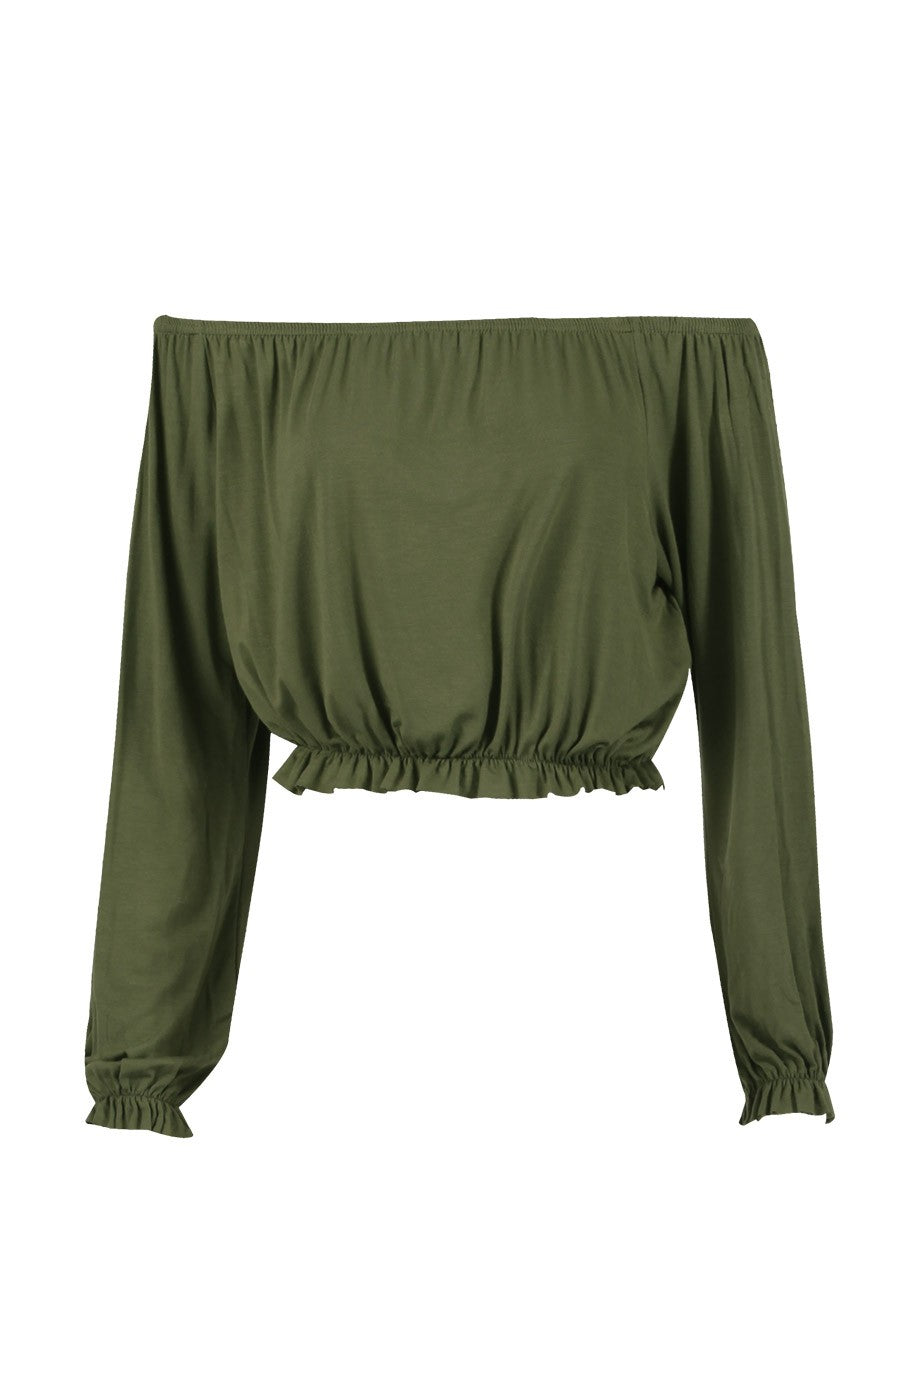 'Darcy' Khaki Off The Shoulder Top